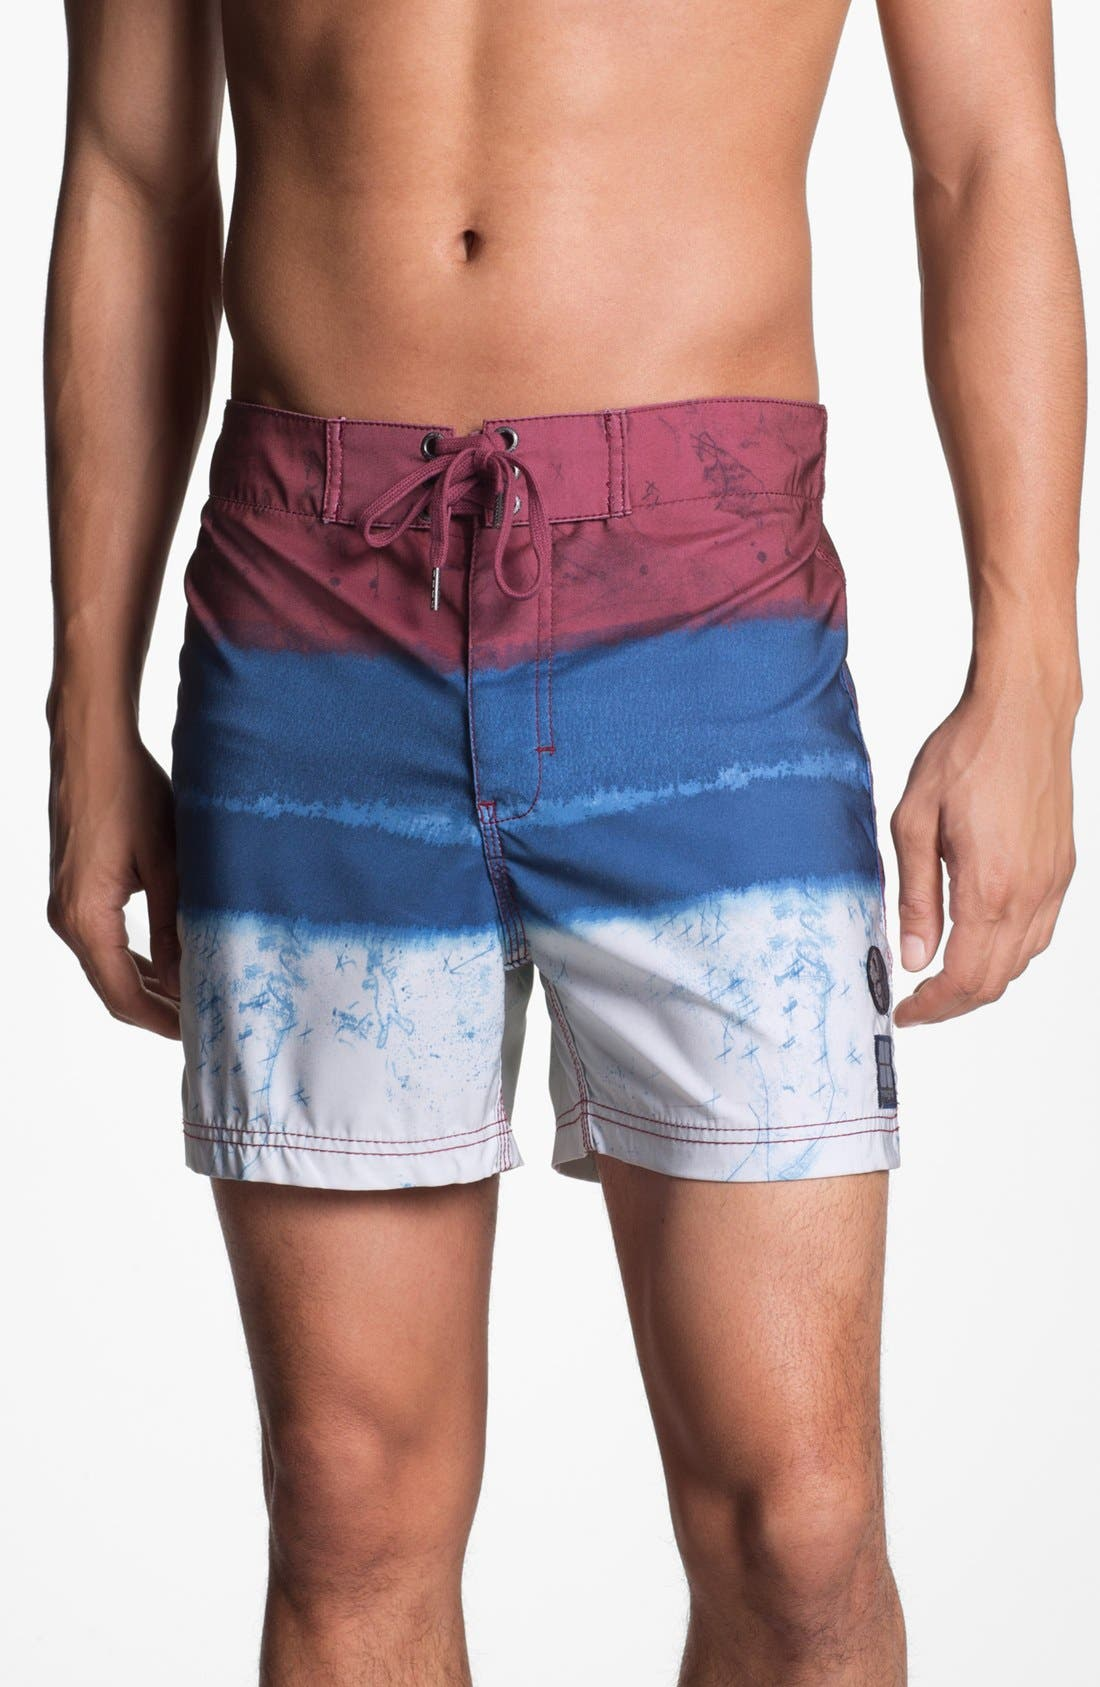 Alternate Image 1 Selected - Insight 'Le Blur - Bunker' Board Shorts